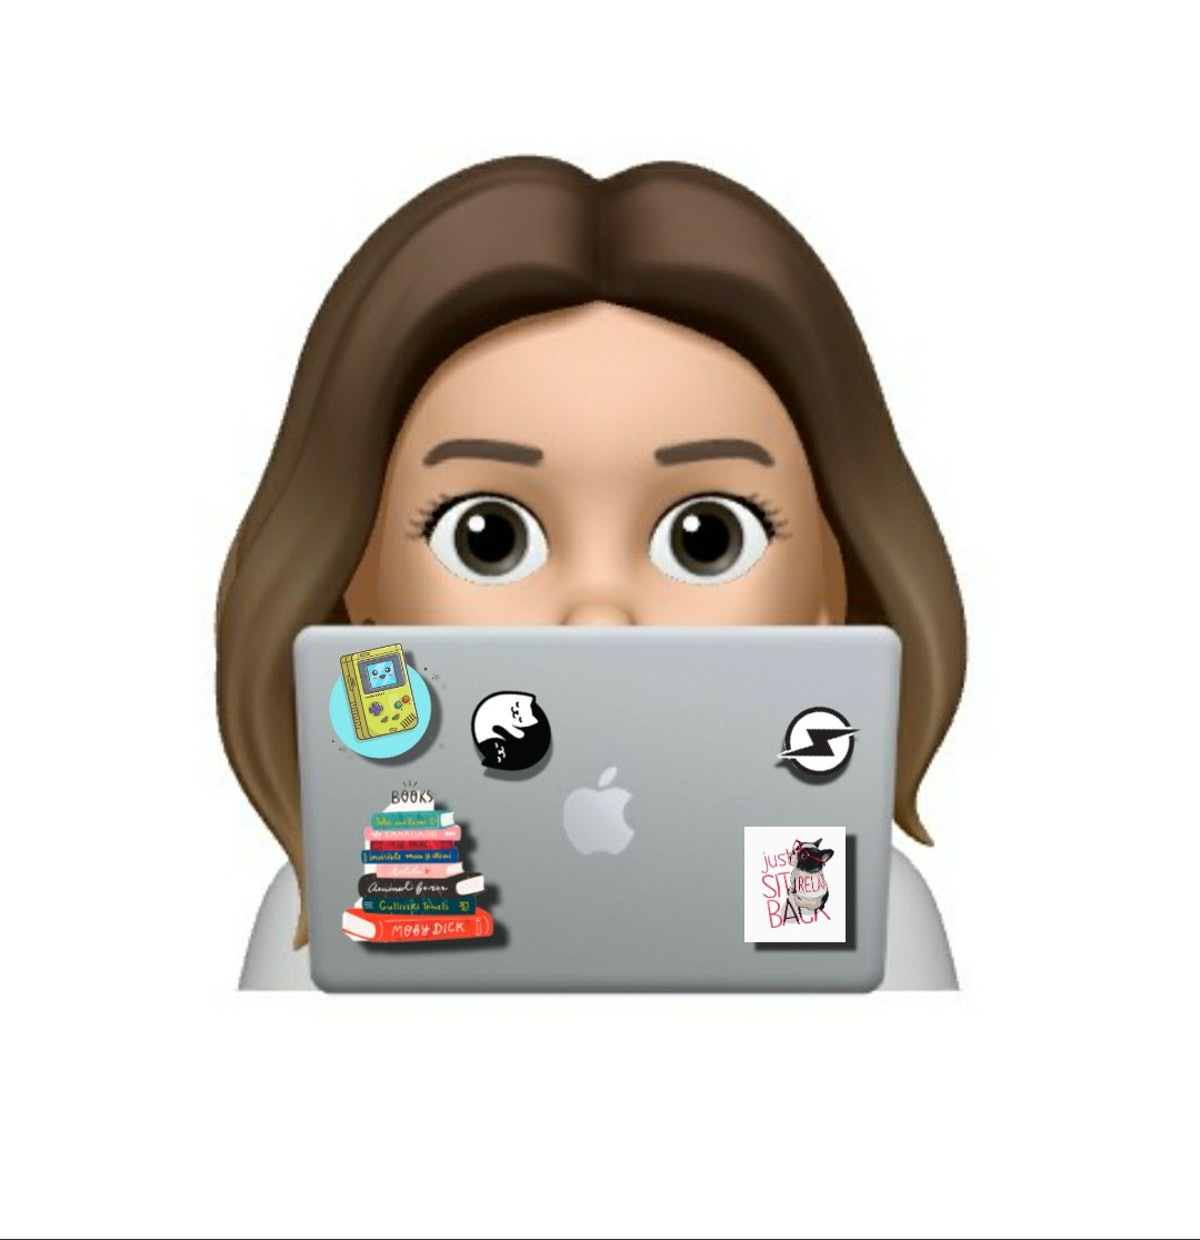 Here's how to add stickers to your laptop Memoji in a few simple steps.